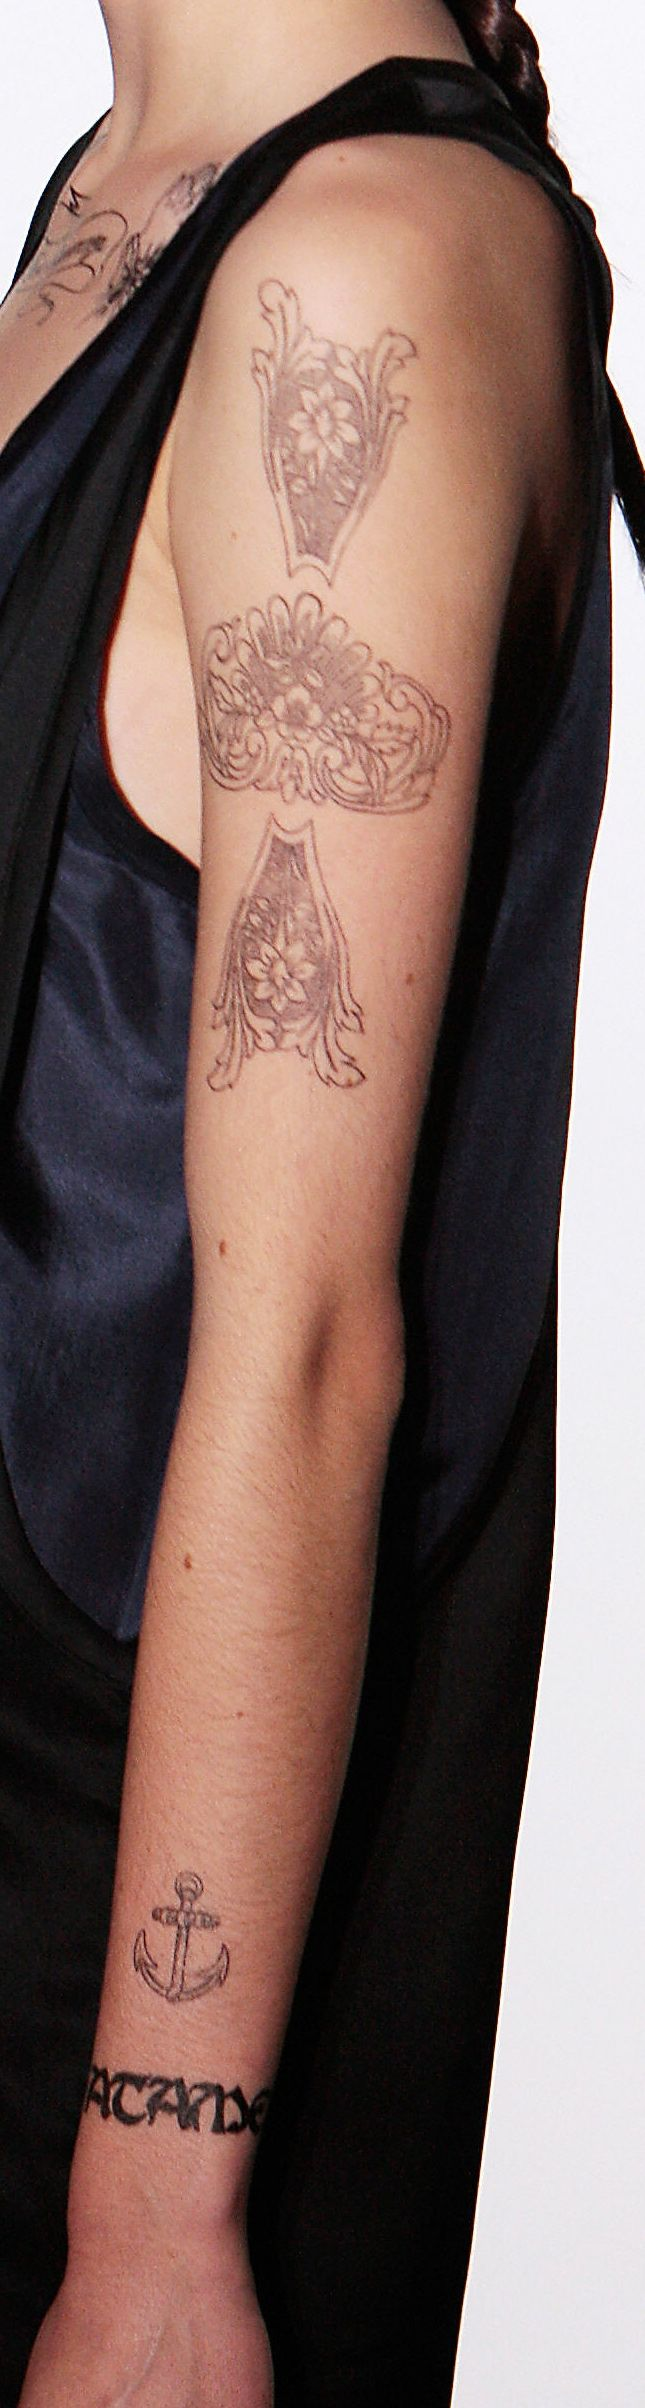 Kris and Karl Blurr The Line Between Body Art and Jewelry